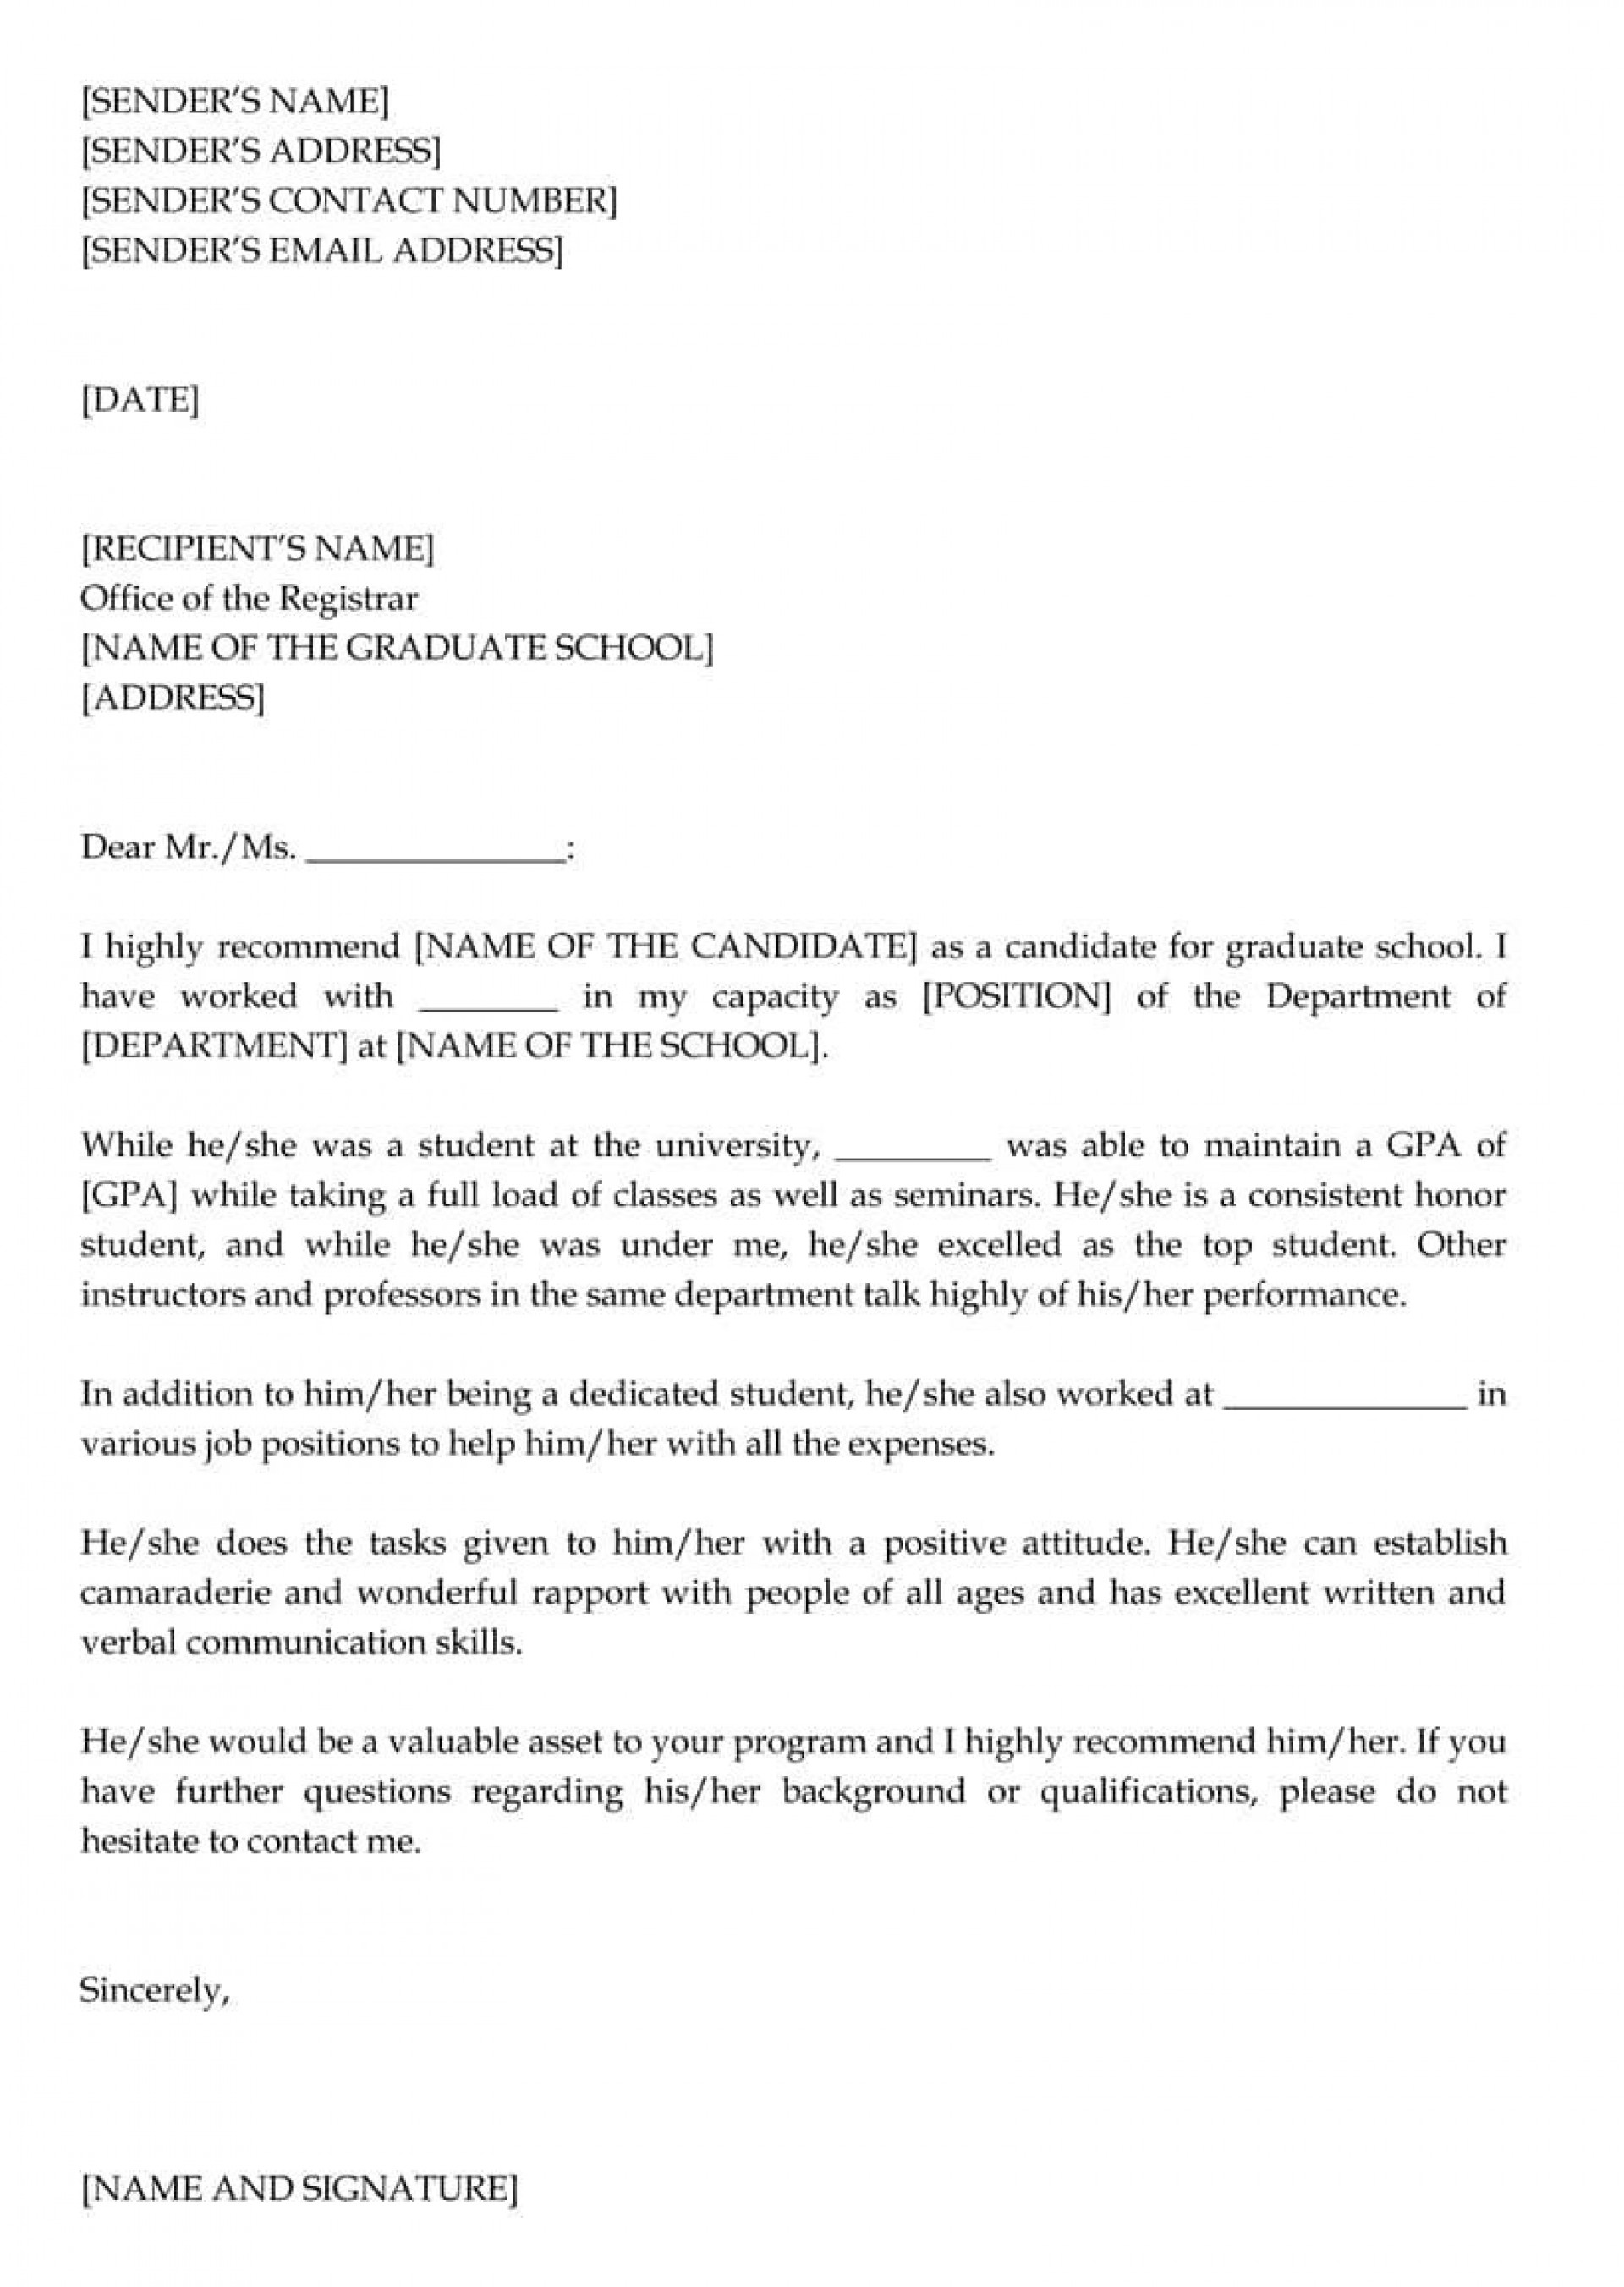 001 Impressive Example Of Letter Recommendation For Graduate School From Employer Highest Quality  Sample Pdf Grad1920